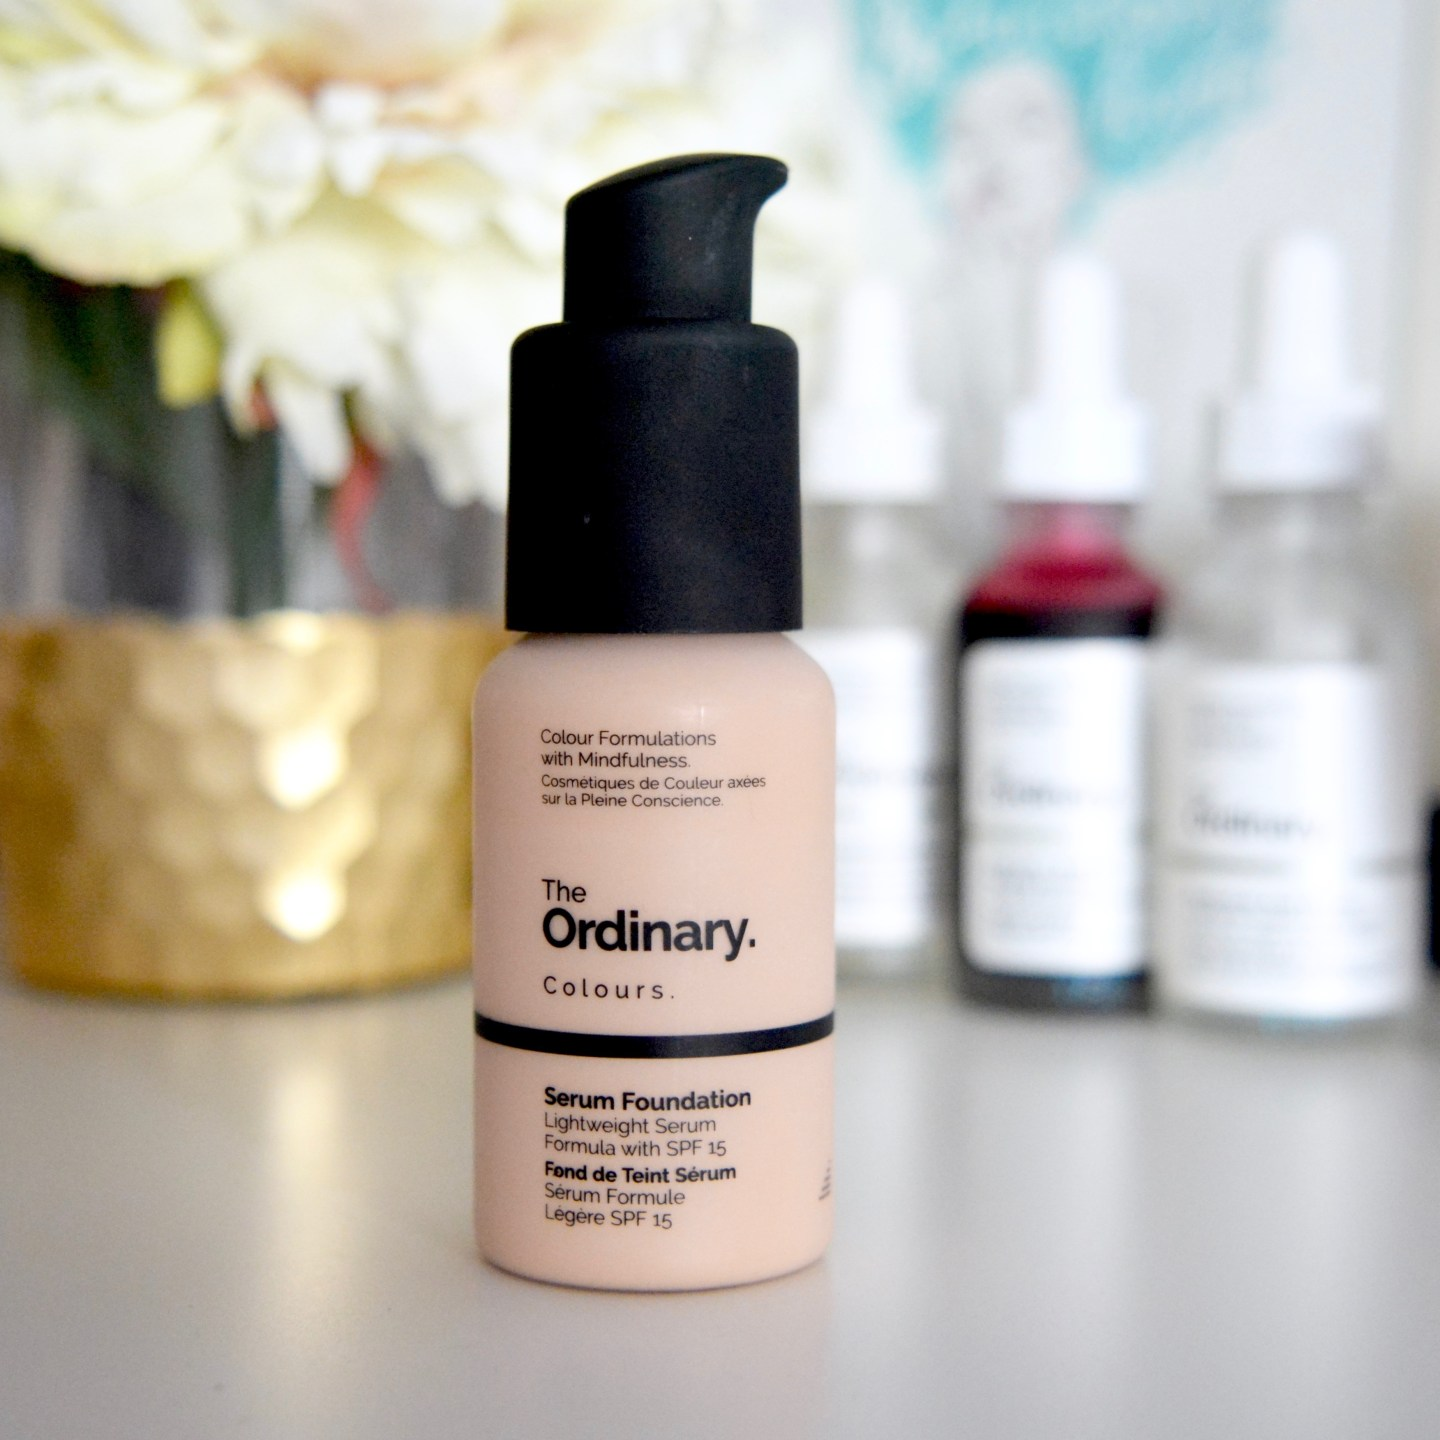 #RosaceaReview: The Ordinary Serum Foundation